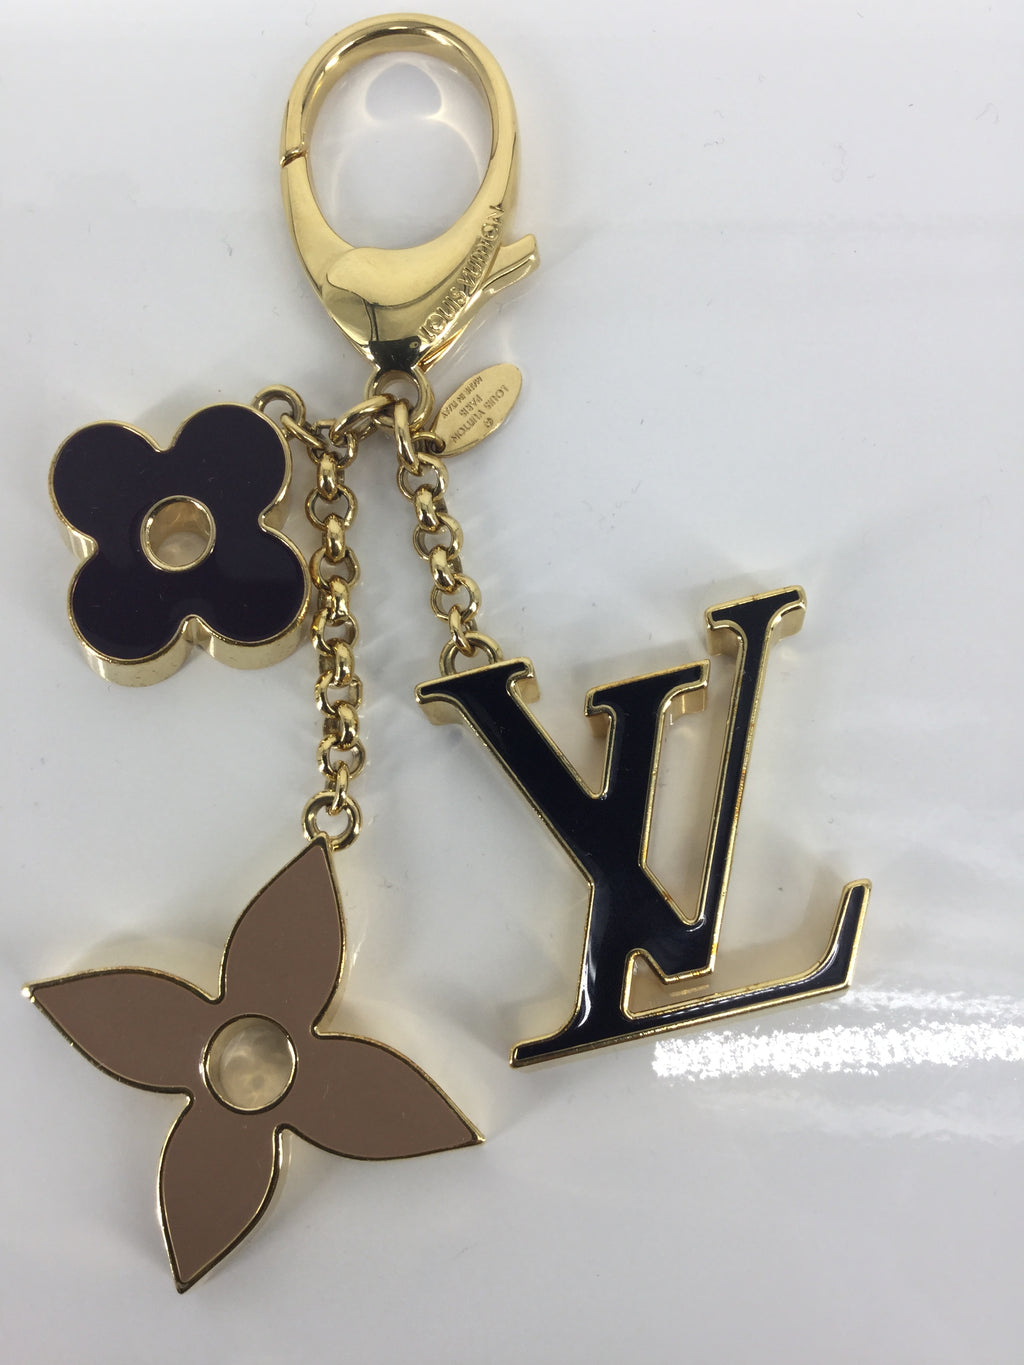 LOUIS VUITTON Fleur de Monogram Key Chain and Bag Charm